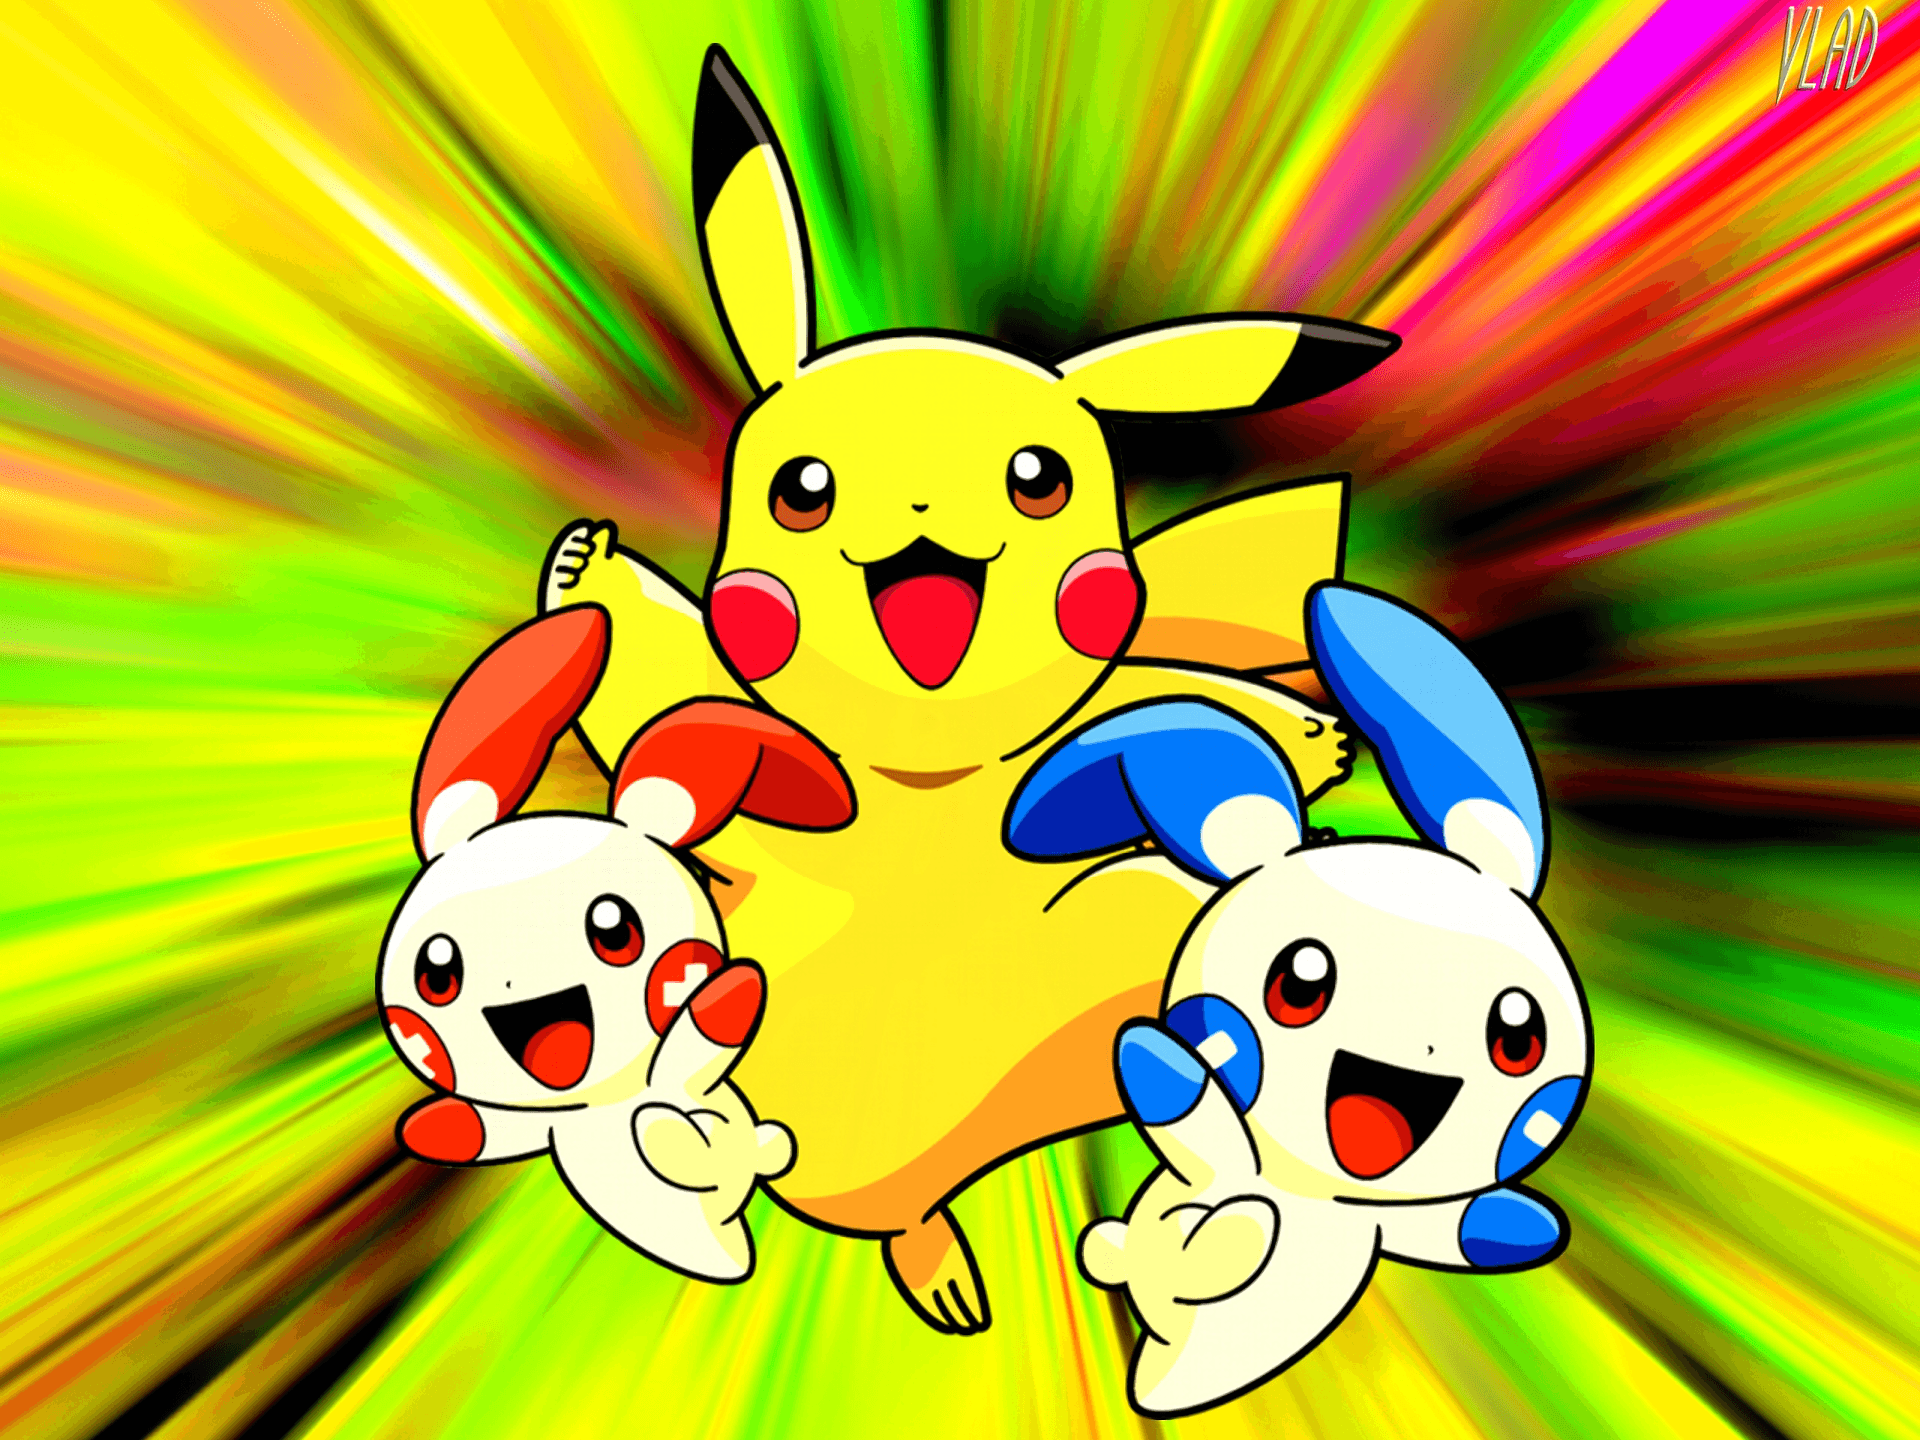 Pokémon Full HD Wallpaper and Background Image | 1920x1440 | ID:723273